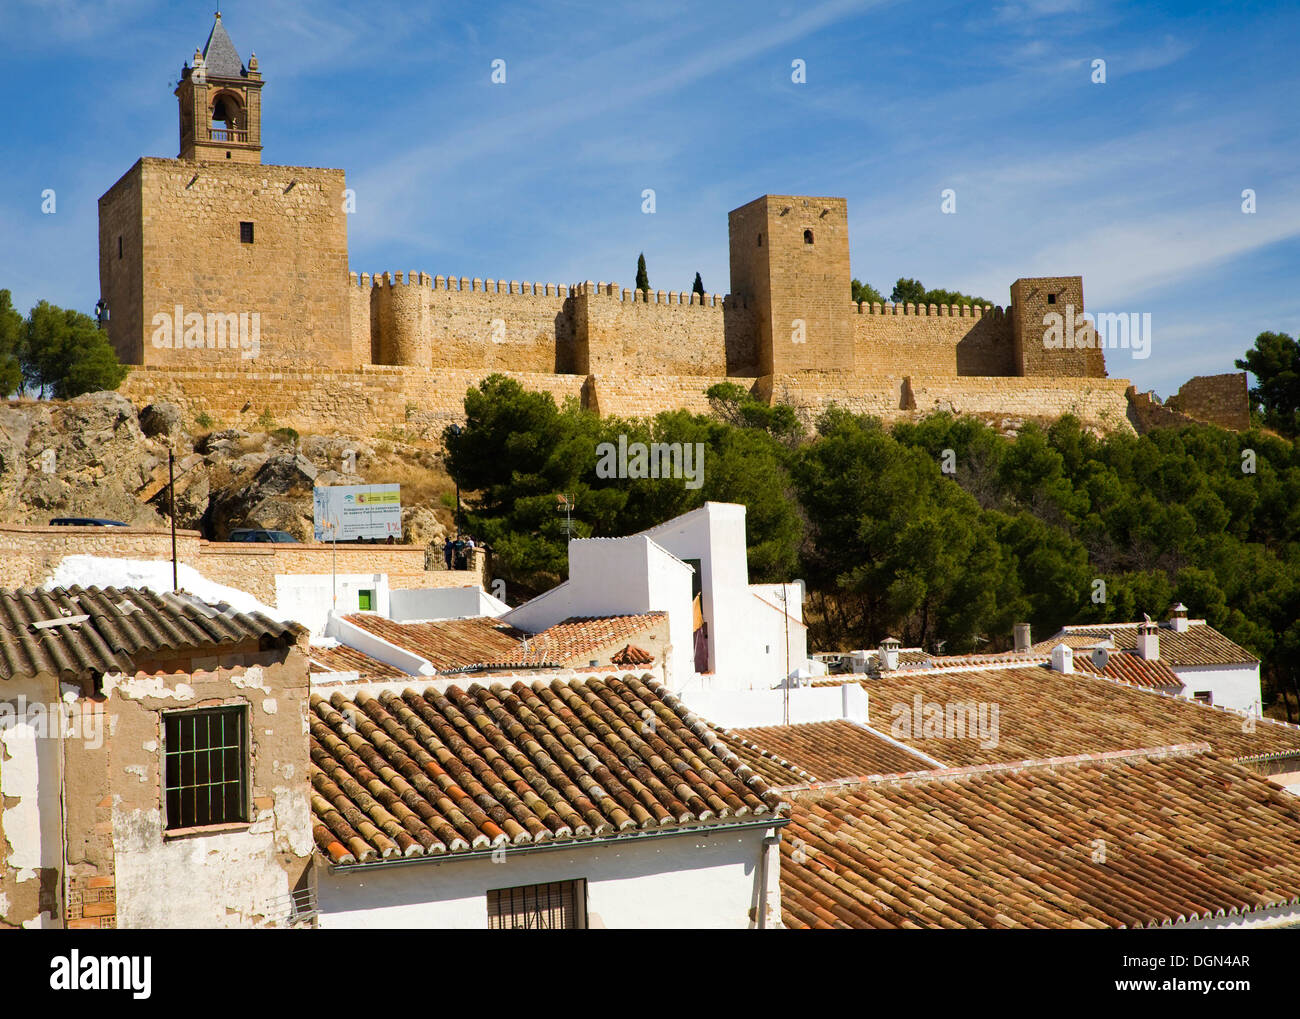 Historic fortified Alcazaba in Antequera Spain - Stock Image